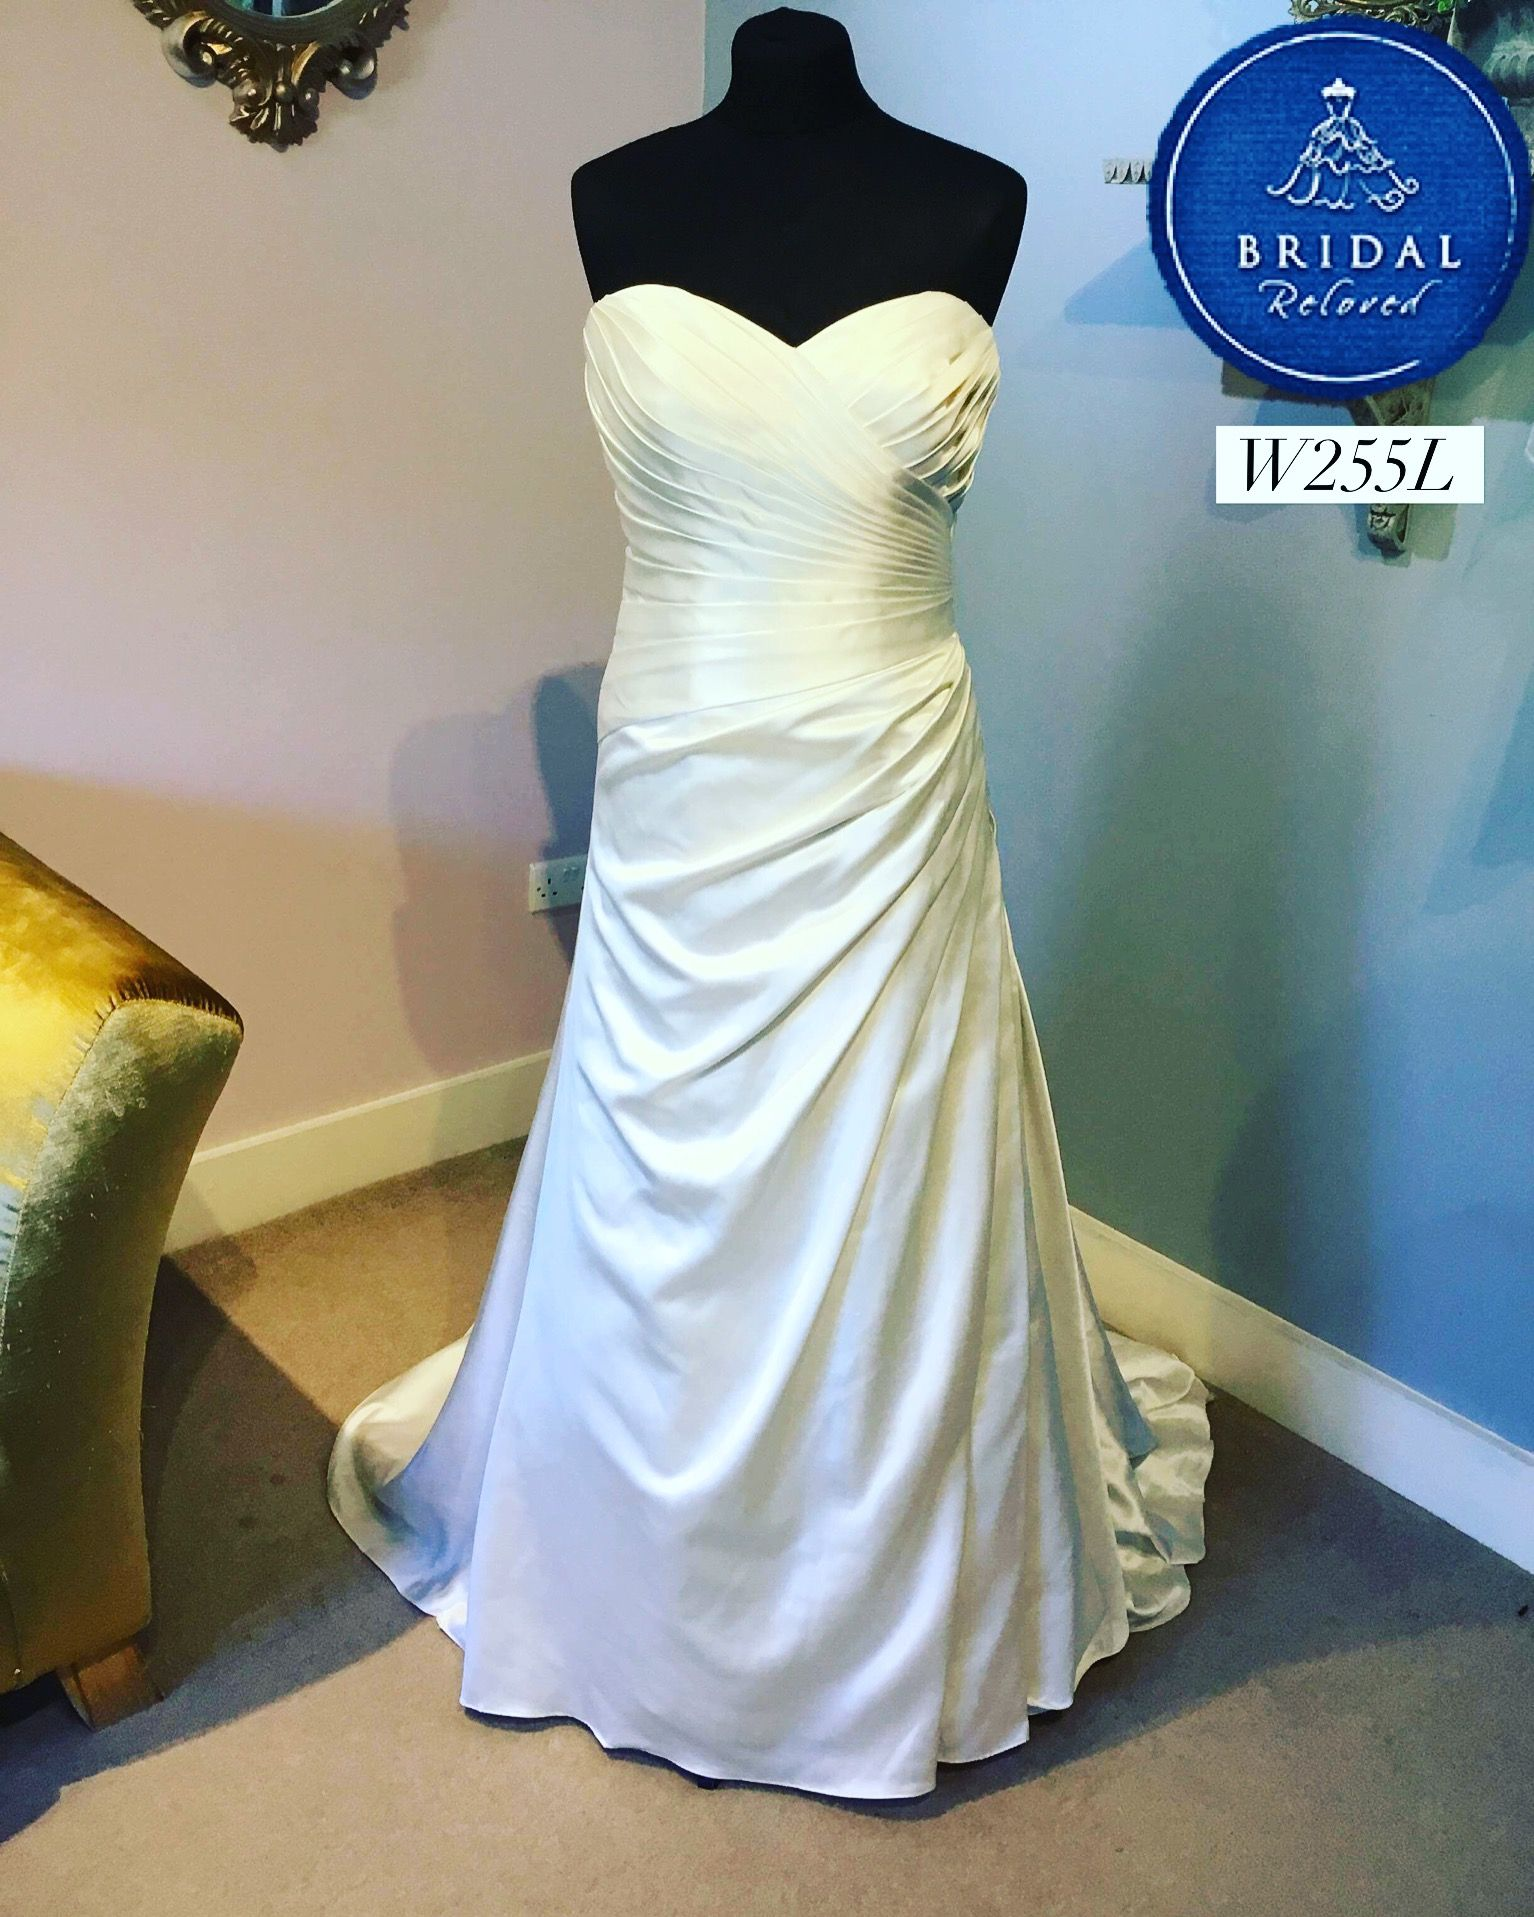 defccd8041925 ... Bridal Reloved Wallingford. 💓New Dress💓 Stunning Aline dress by  Ronald Joyce 💕 This is now available in